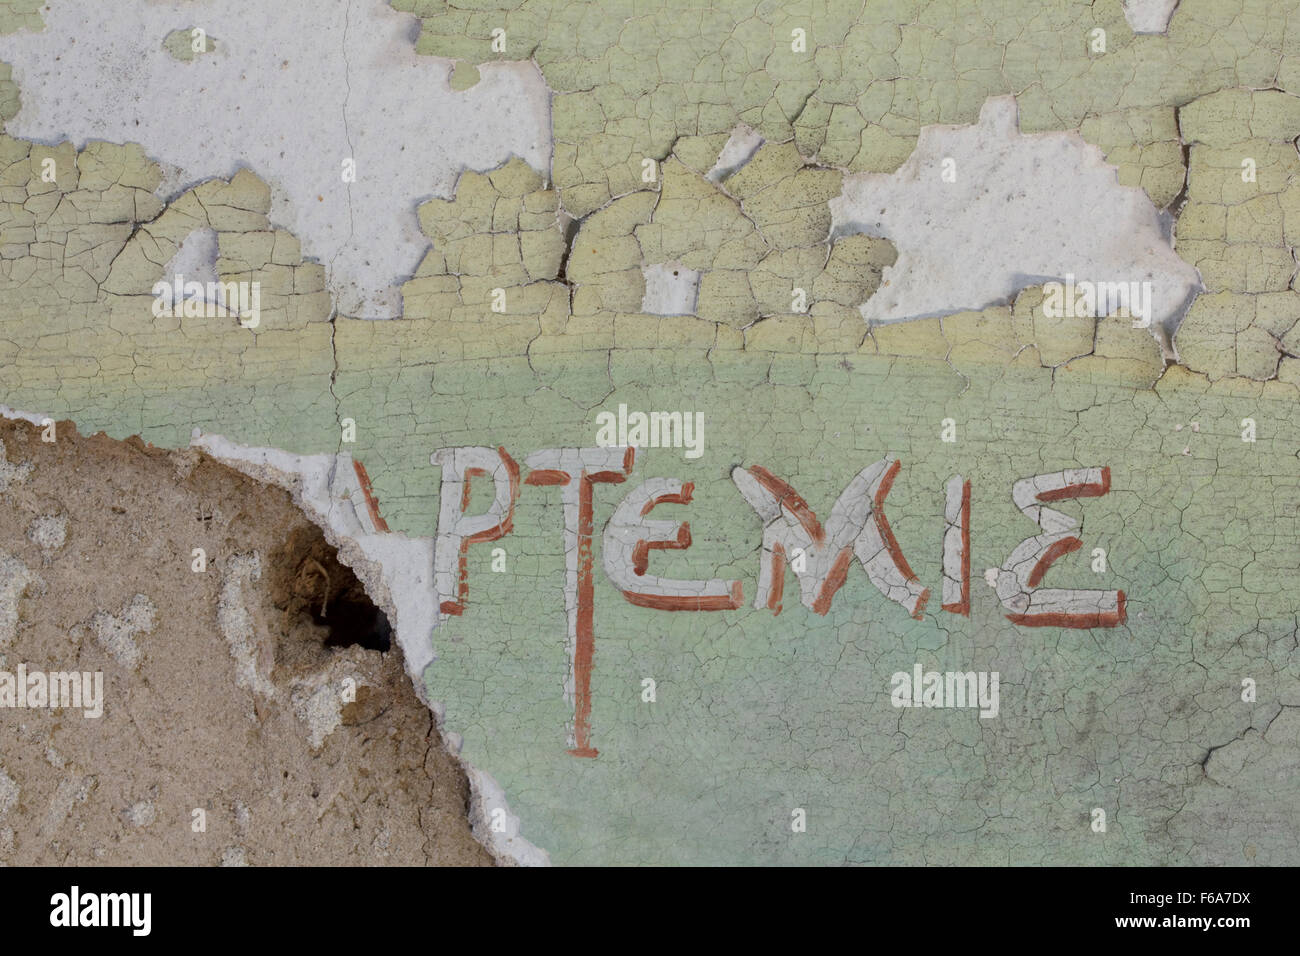 The remainig section of wallpainting's title '(A)rtemis' written in Greek by M. Papamalis and detached - Stock Image